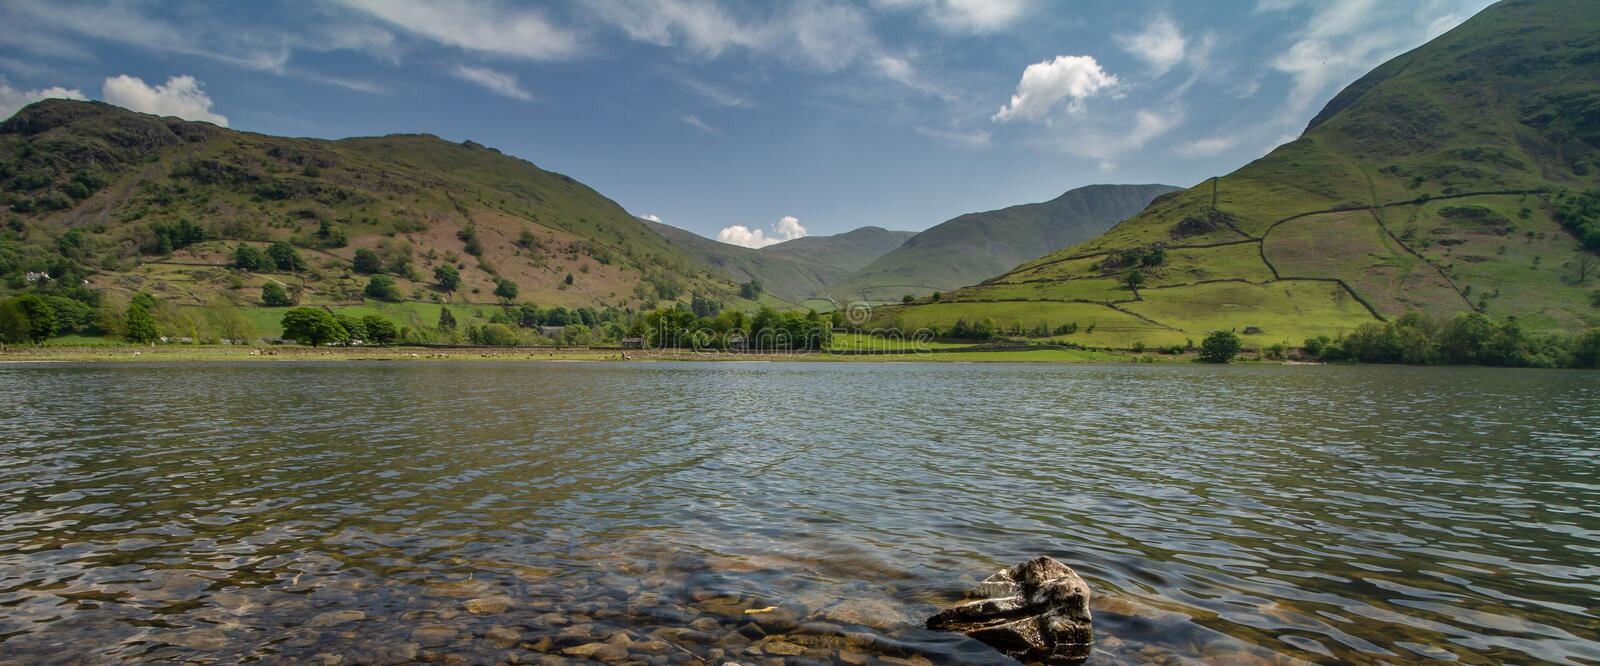 Hartsop in the lake district. Hartsop is a small village in the English Lake District. It lies in the Patterdale valley, near Brothers Water, Hayeswater and royalty free stock photos